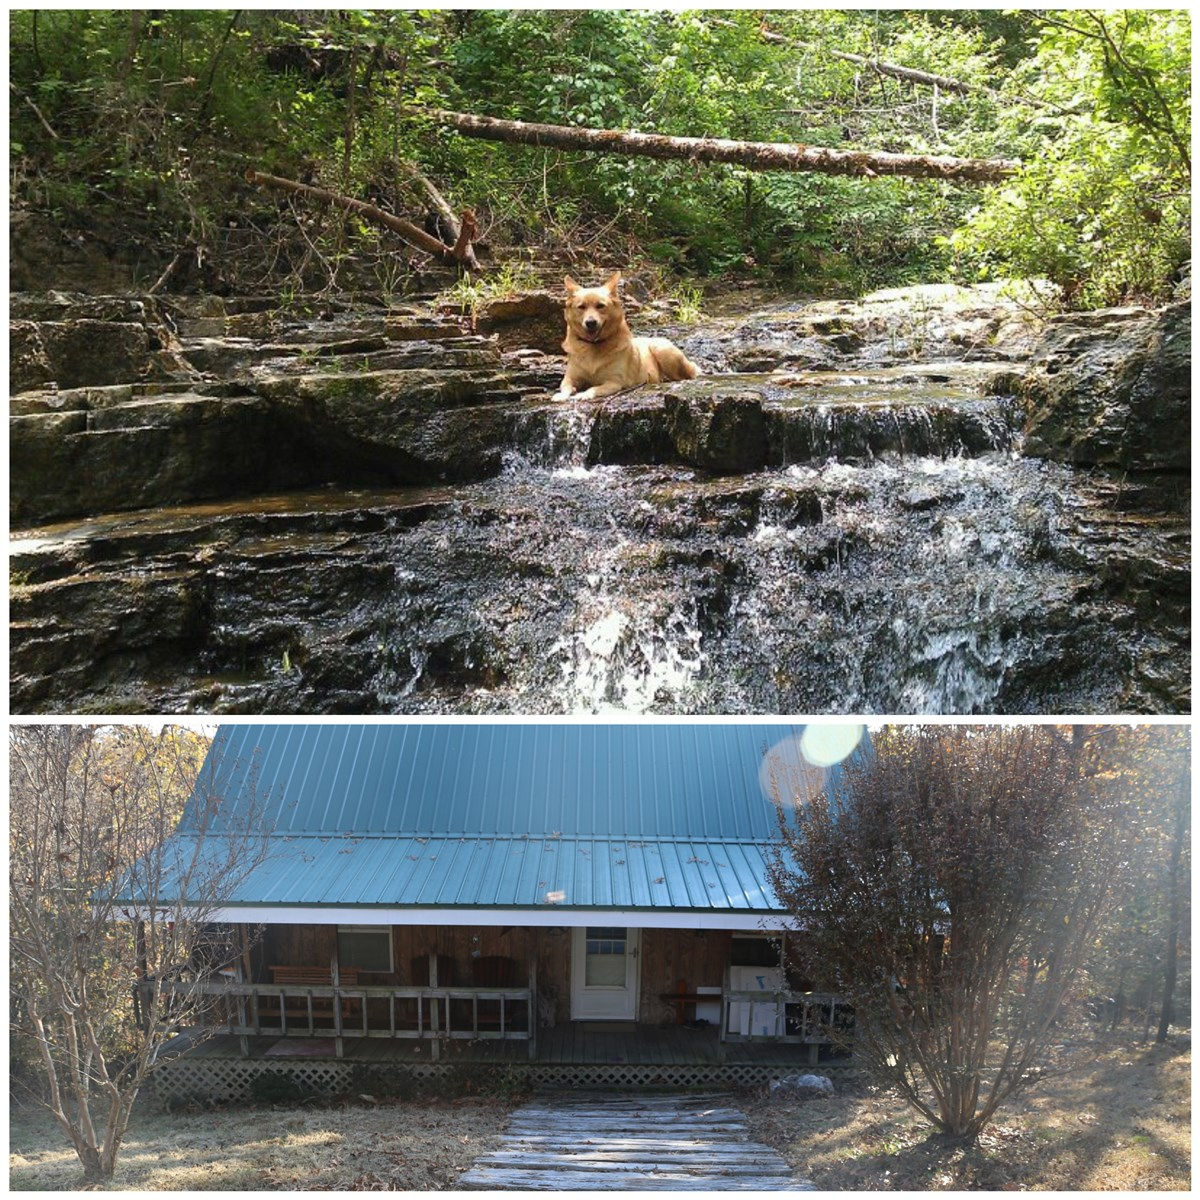 Ozarks Mountain Cabin Near North Fork River Missouri